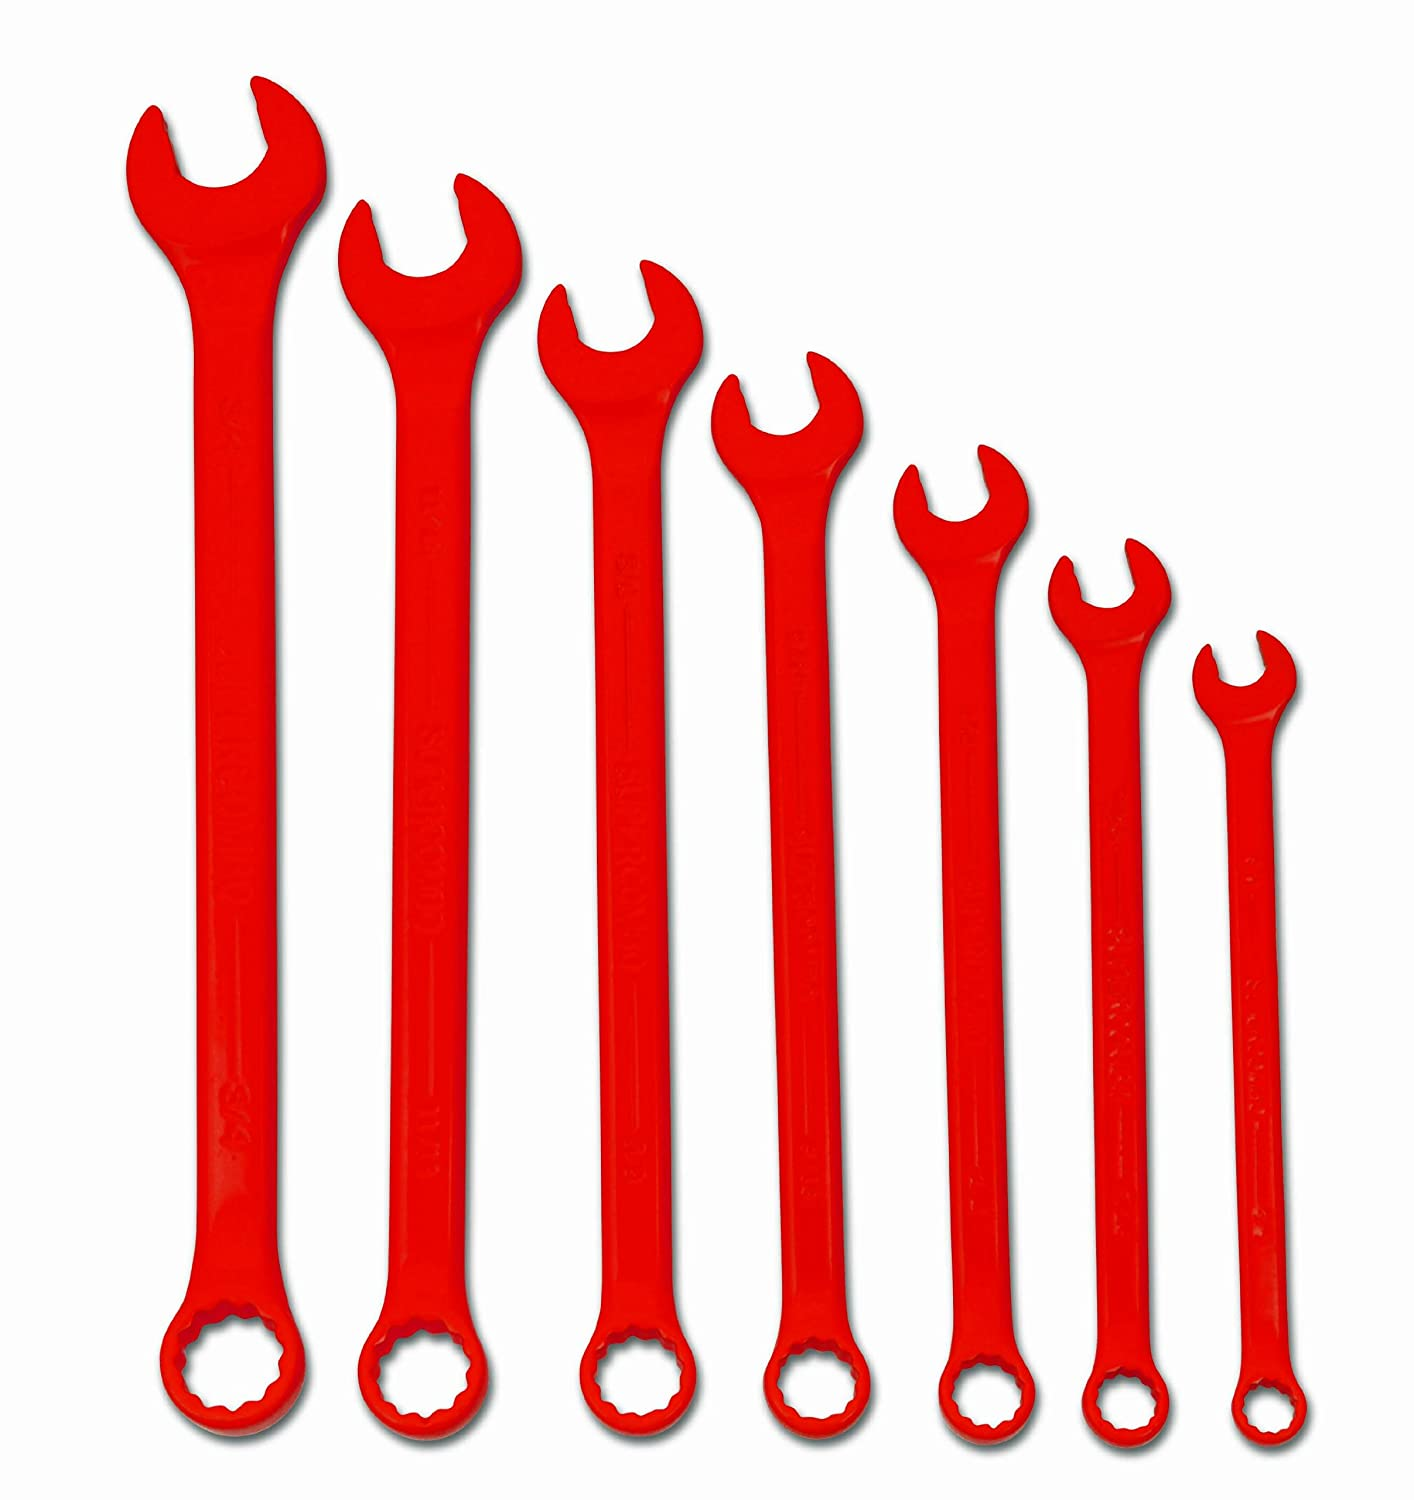 Williams WS-1171RSC 11-Piece Red Super Combo Combination Wrench Set